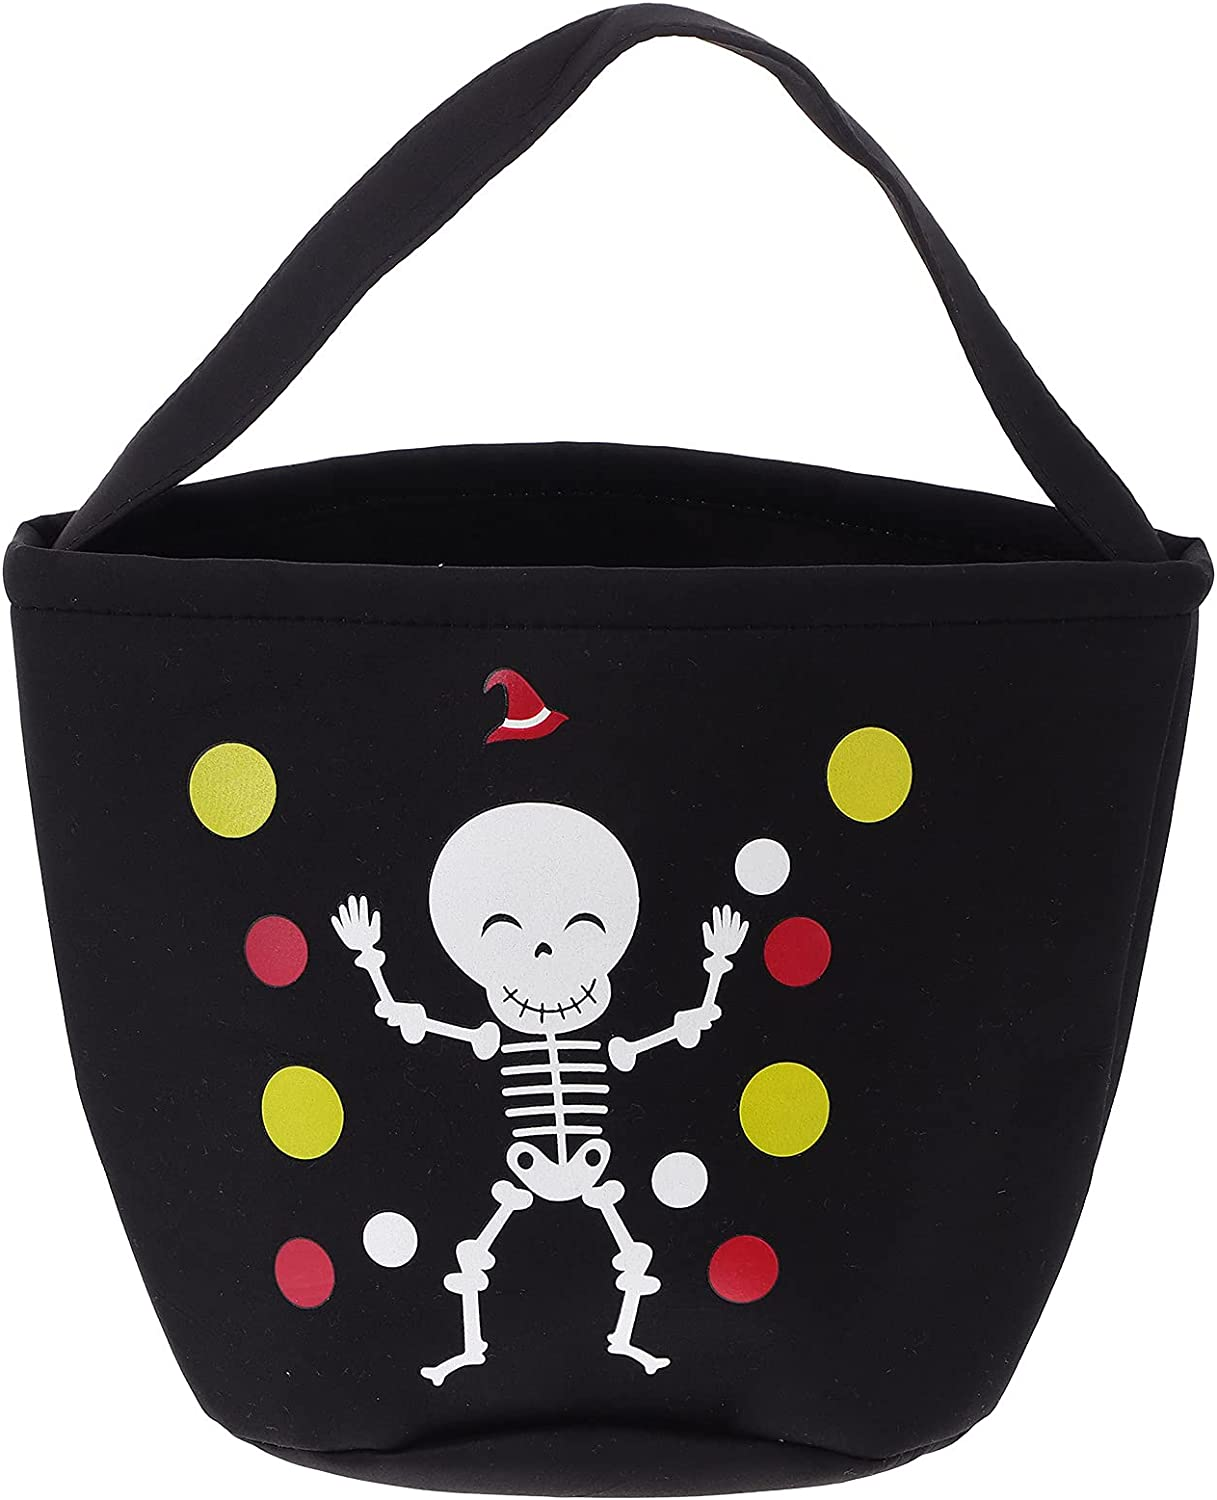 VALICLUD Halloween Chic Portable Max 78% OFF Candy Cartoon sale P Pouch Bag